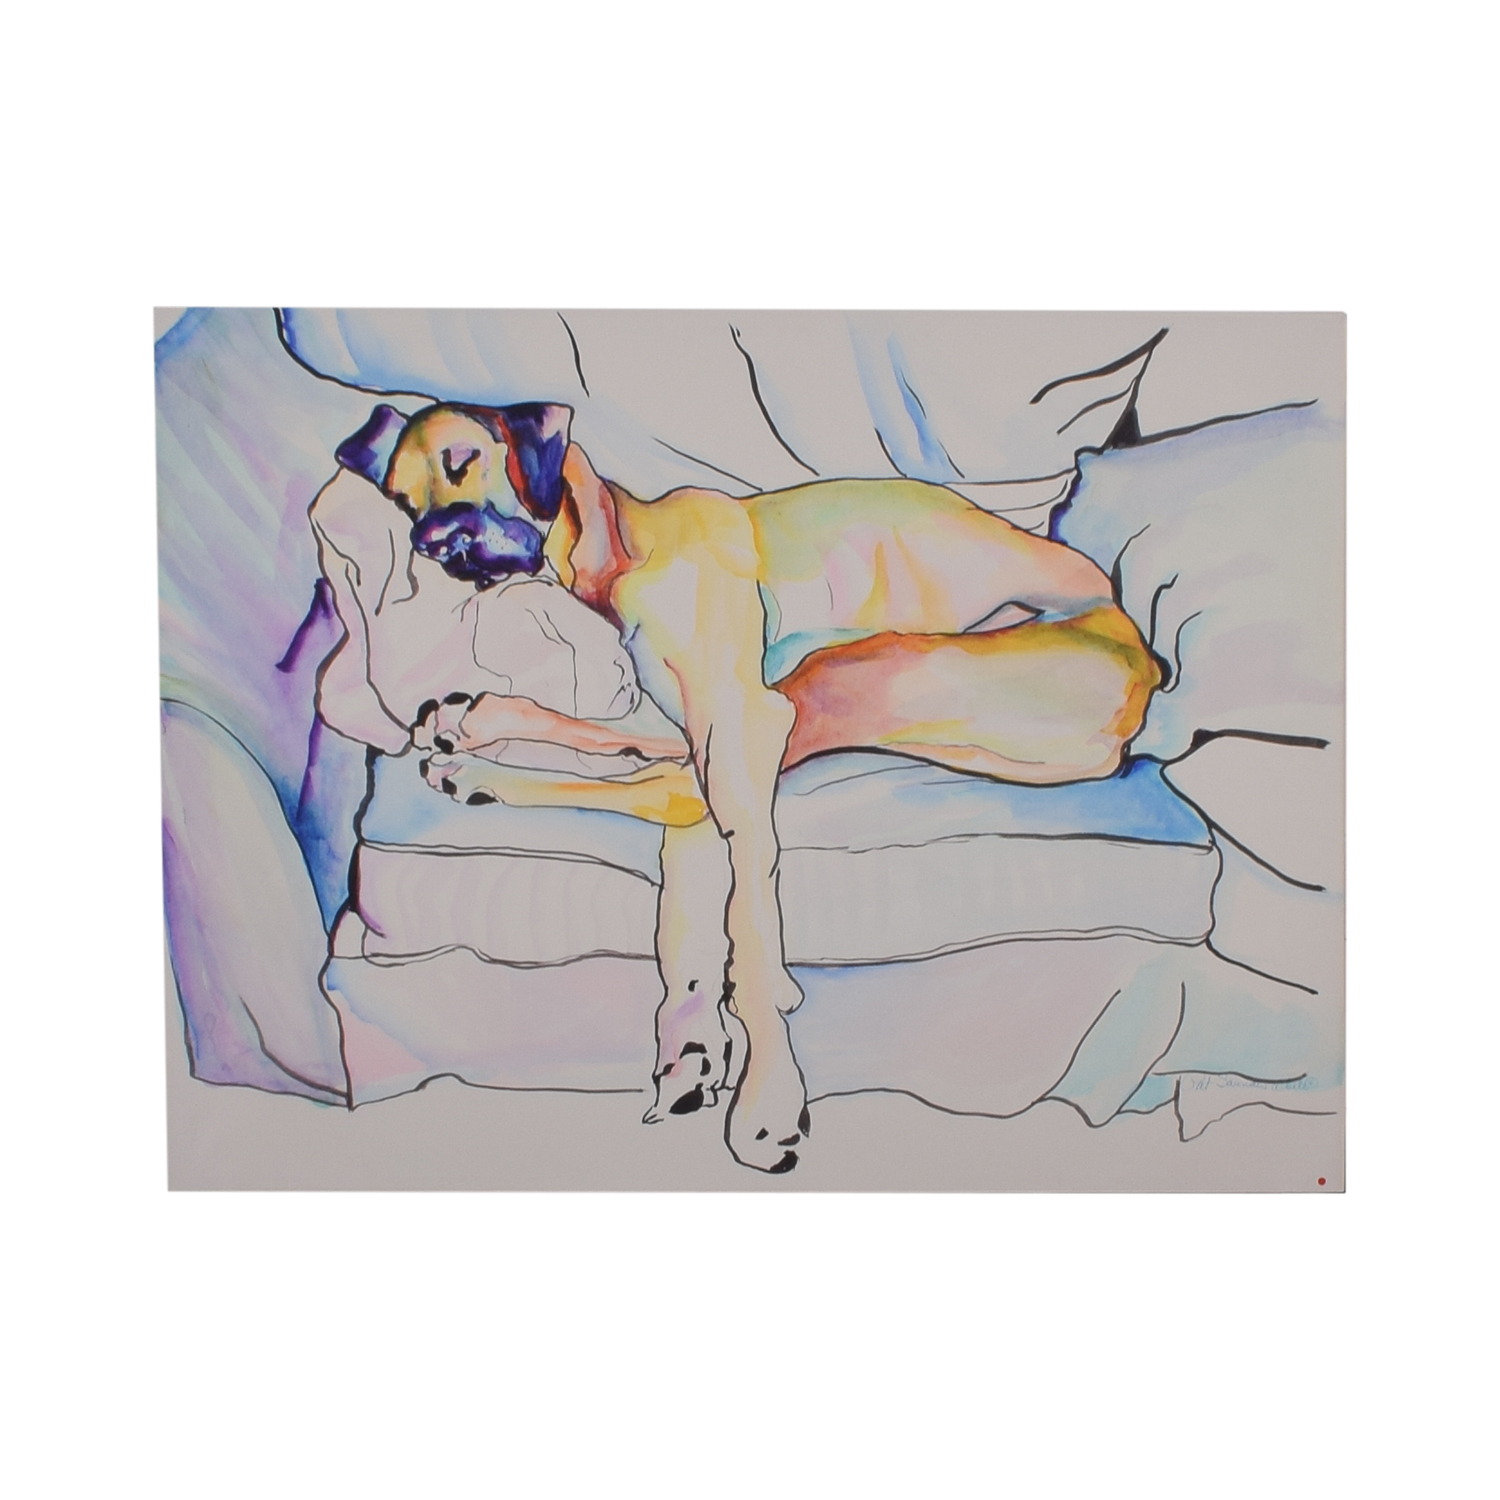 Pat Saunders-White Sleeping Beauty Wall Art for sale